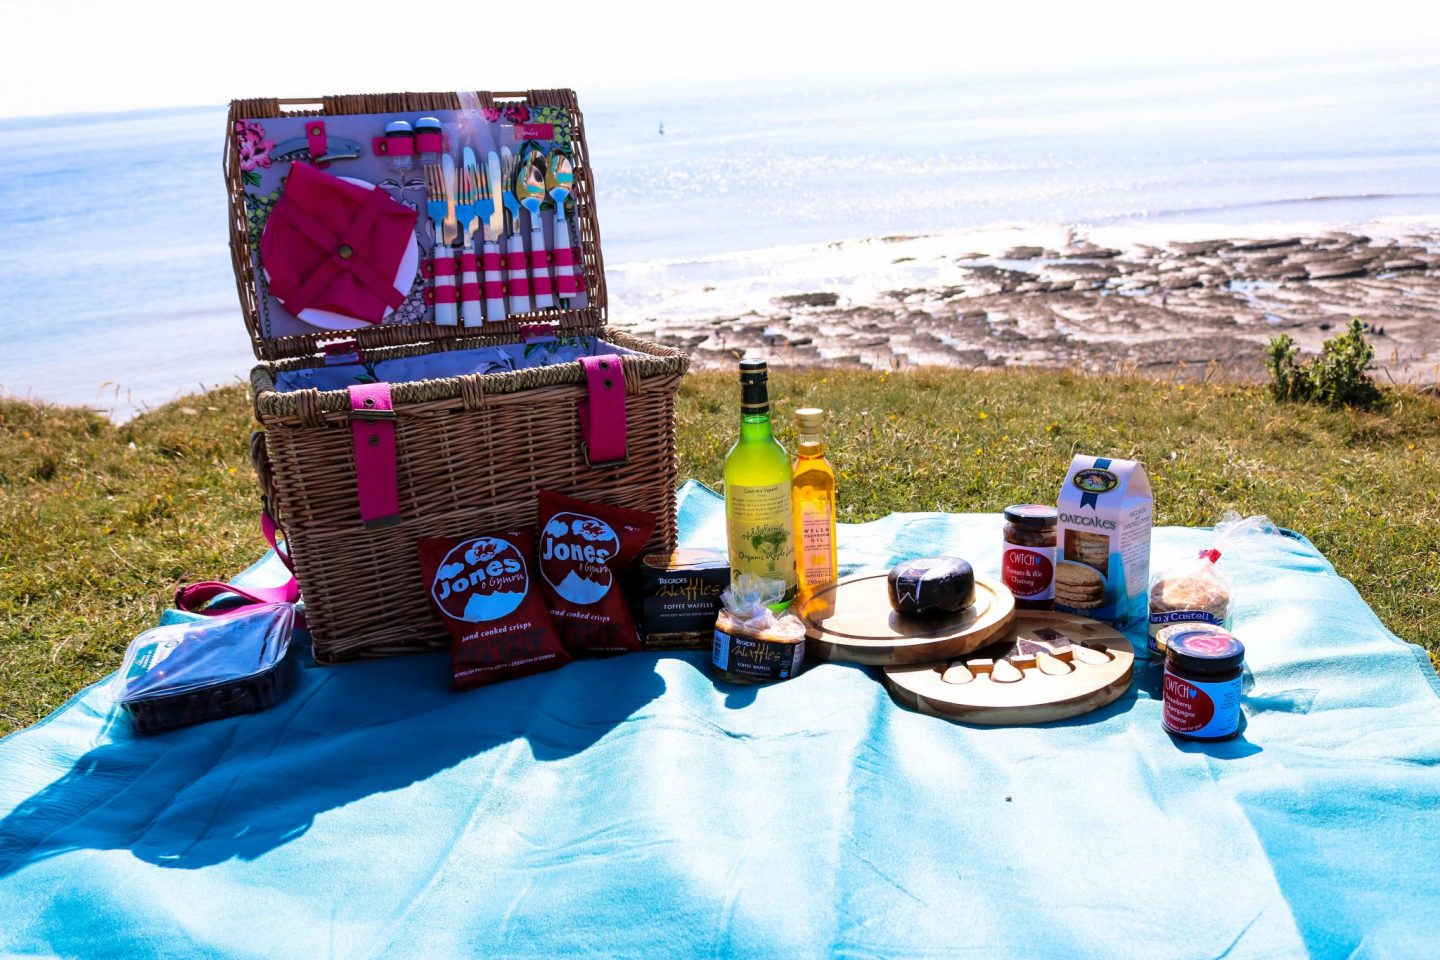 The awesome Welsh produce you need to pack in your picnic hamper